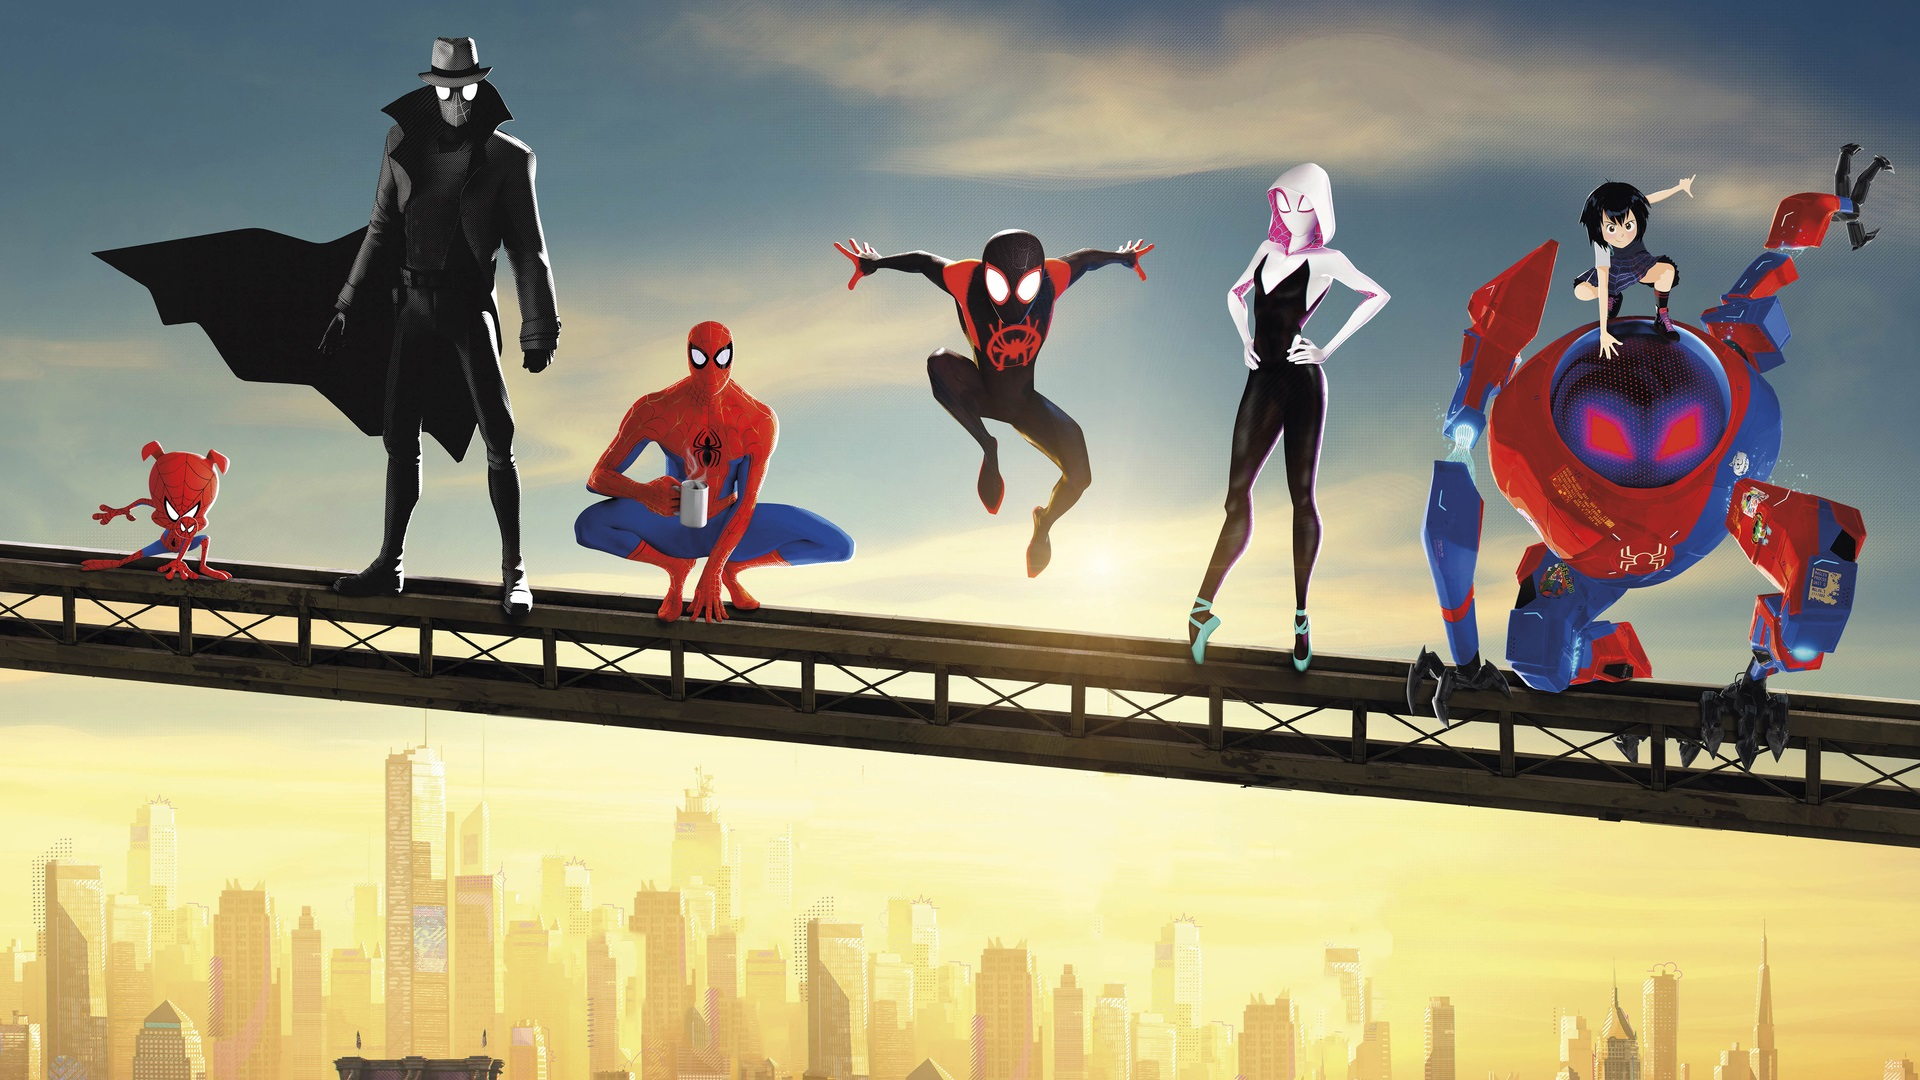 Web of quality… - Spider-Man makes the leap into feature-length theatrical animation with one of the characters absolutely best movies.